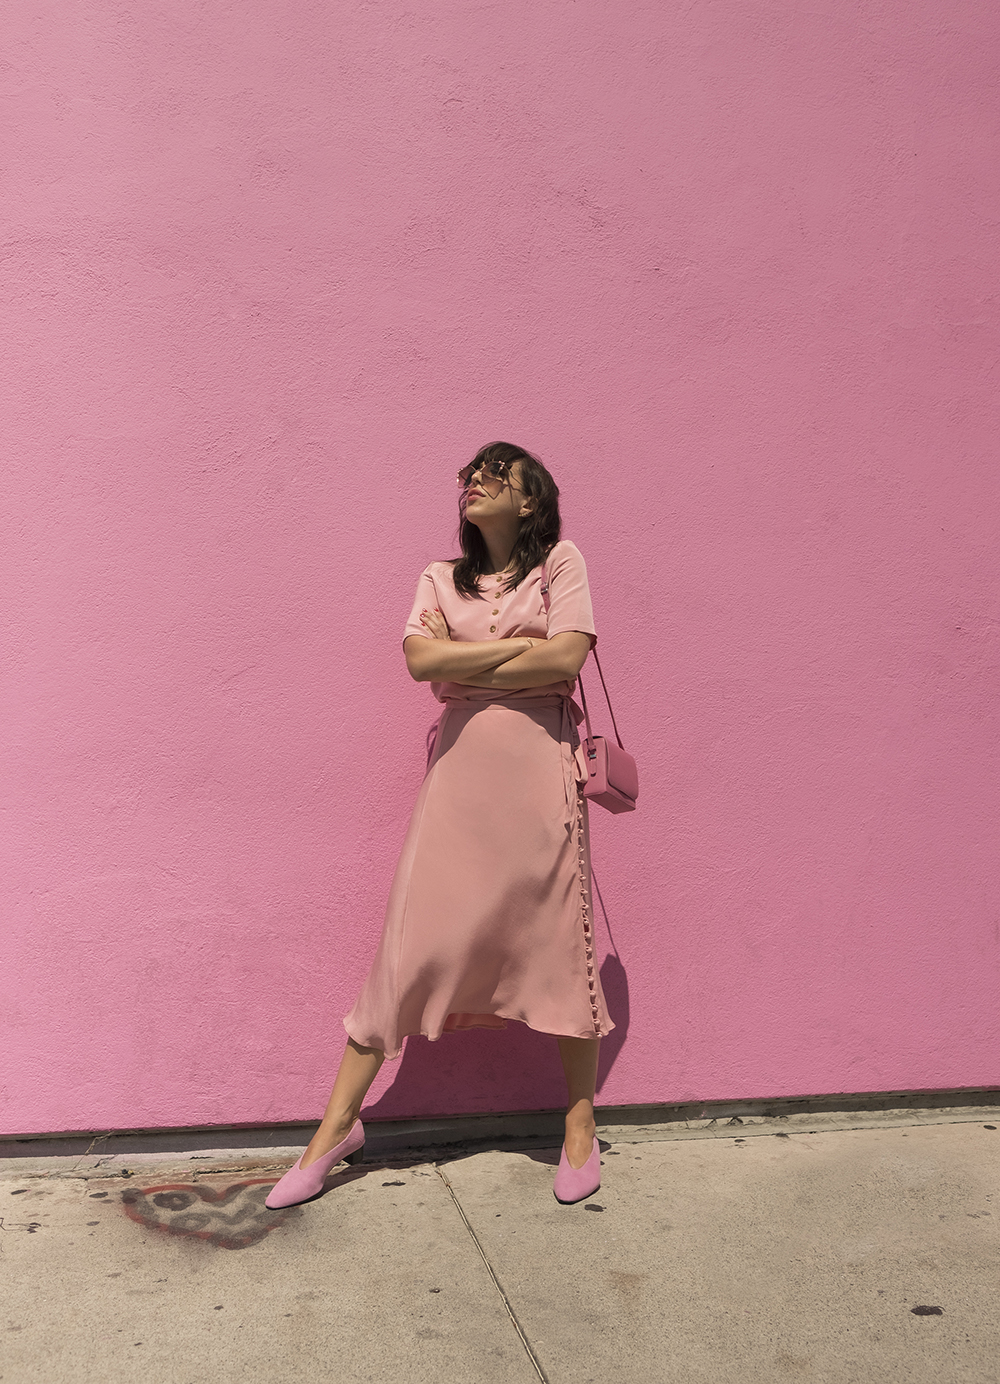 sania claus demina pink outfit look viktoria chan paul smith wall LA los angeles vagabond shoes suede wanda fendi sunglasses_1